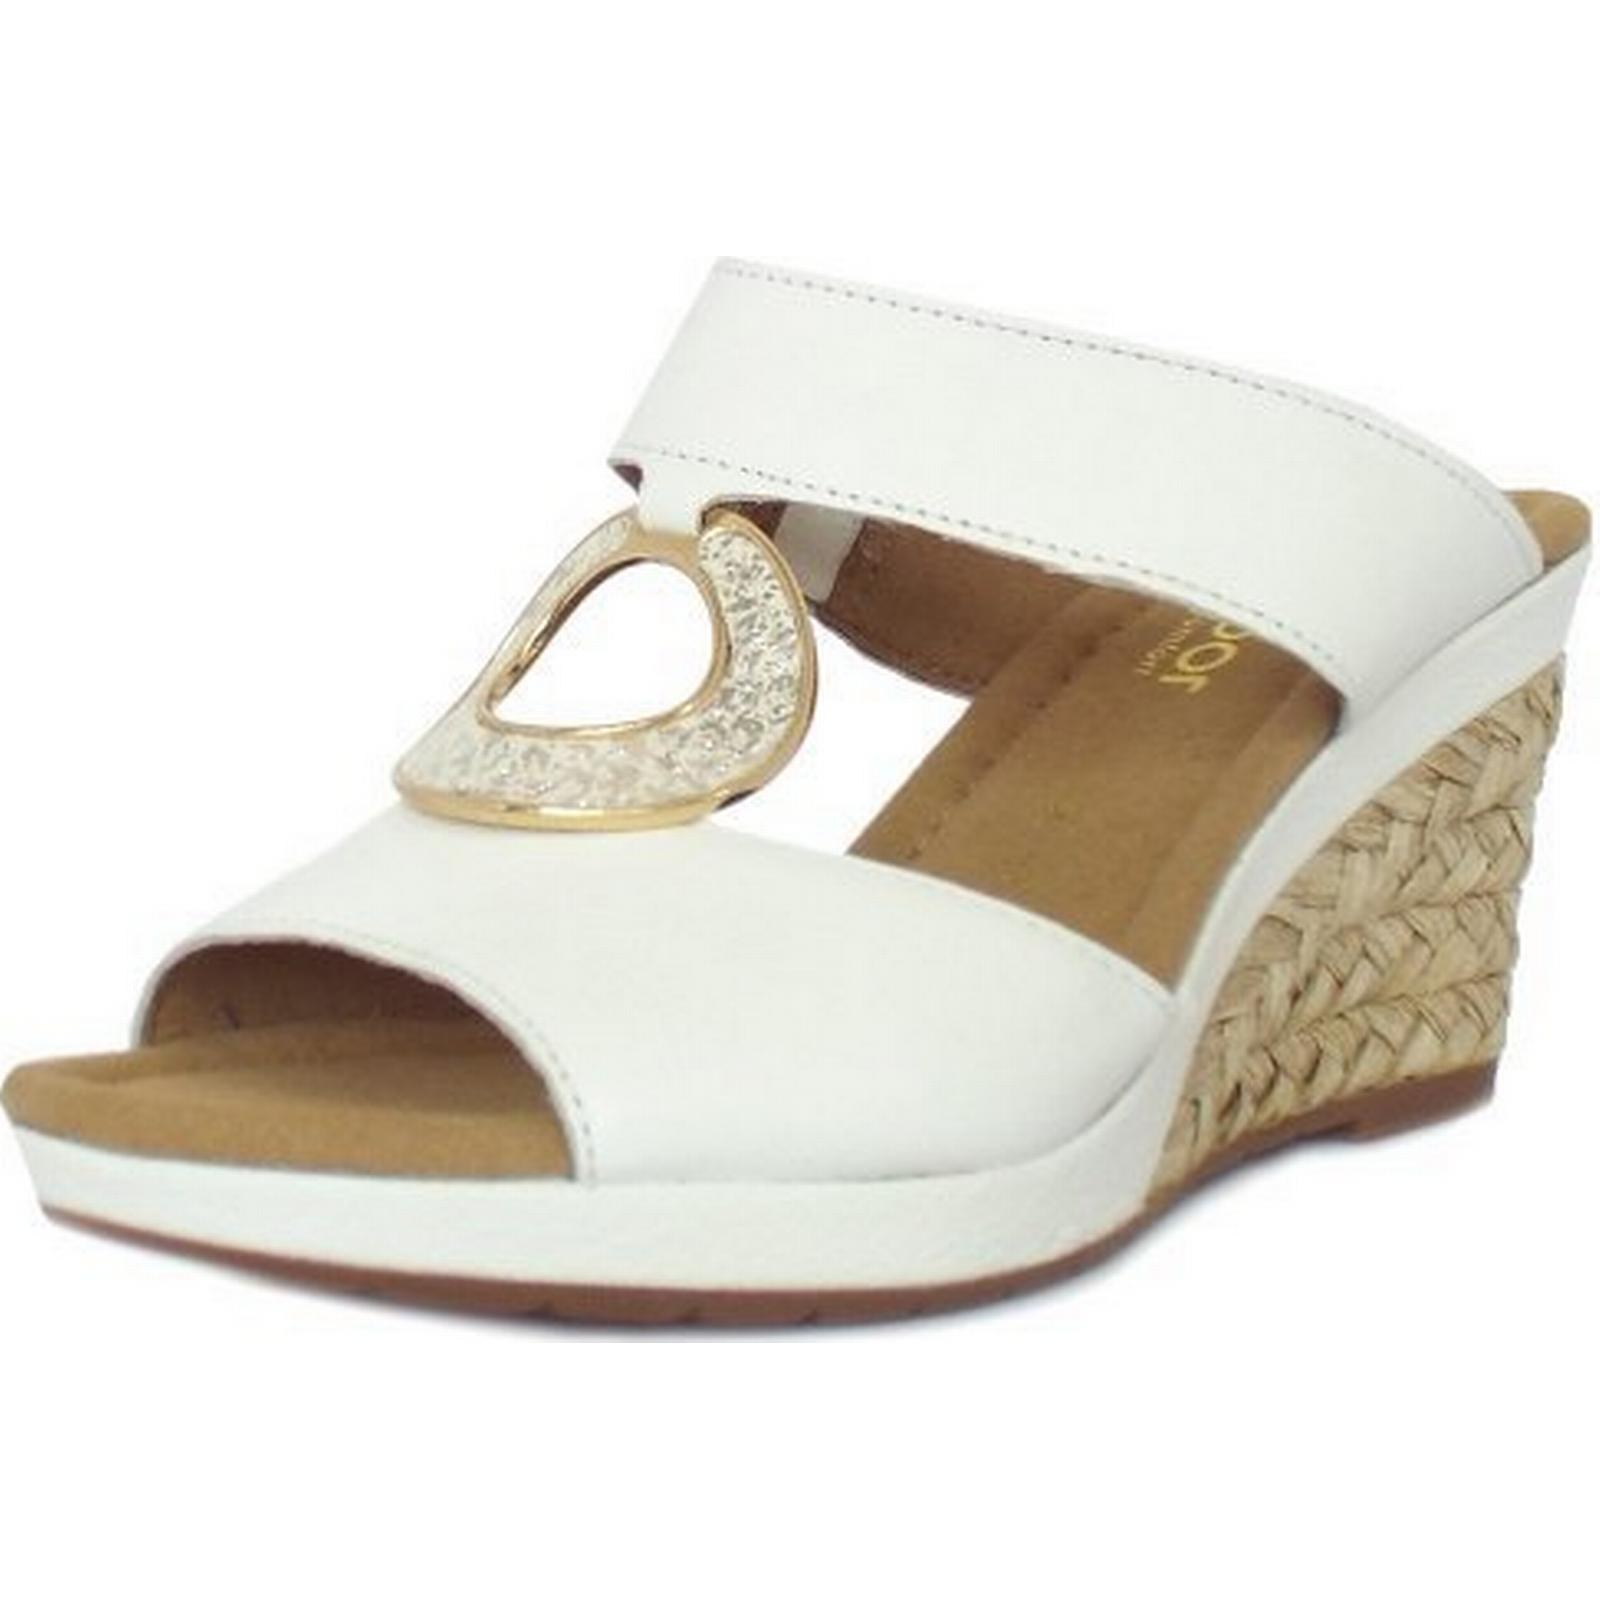 Gabor SIZZLE GABOR LADIES SANDALS 22 821 50 50 821 Size: 6, Colour: WHITE 5f7af3